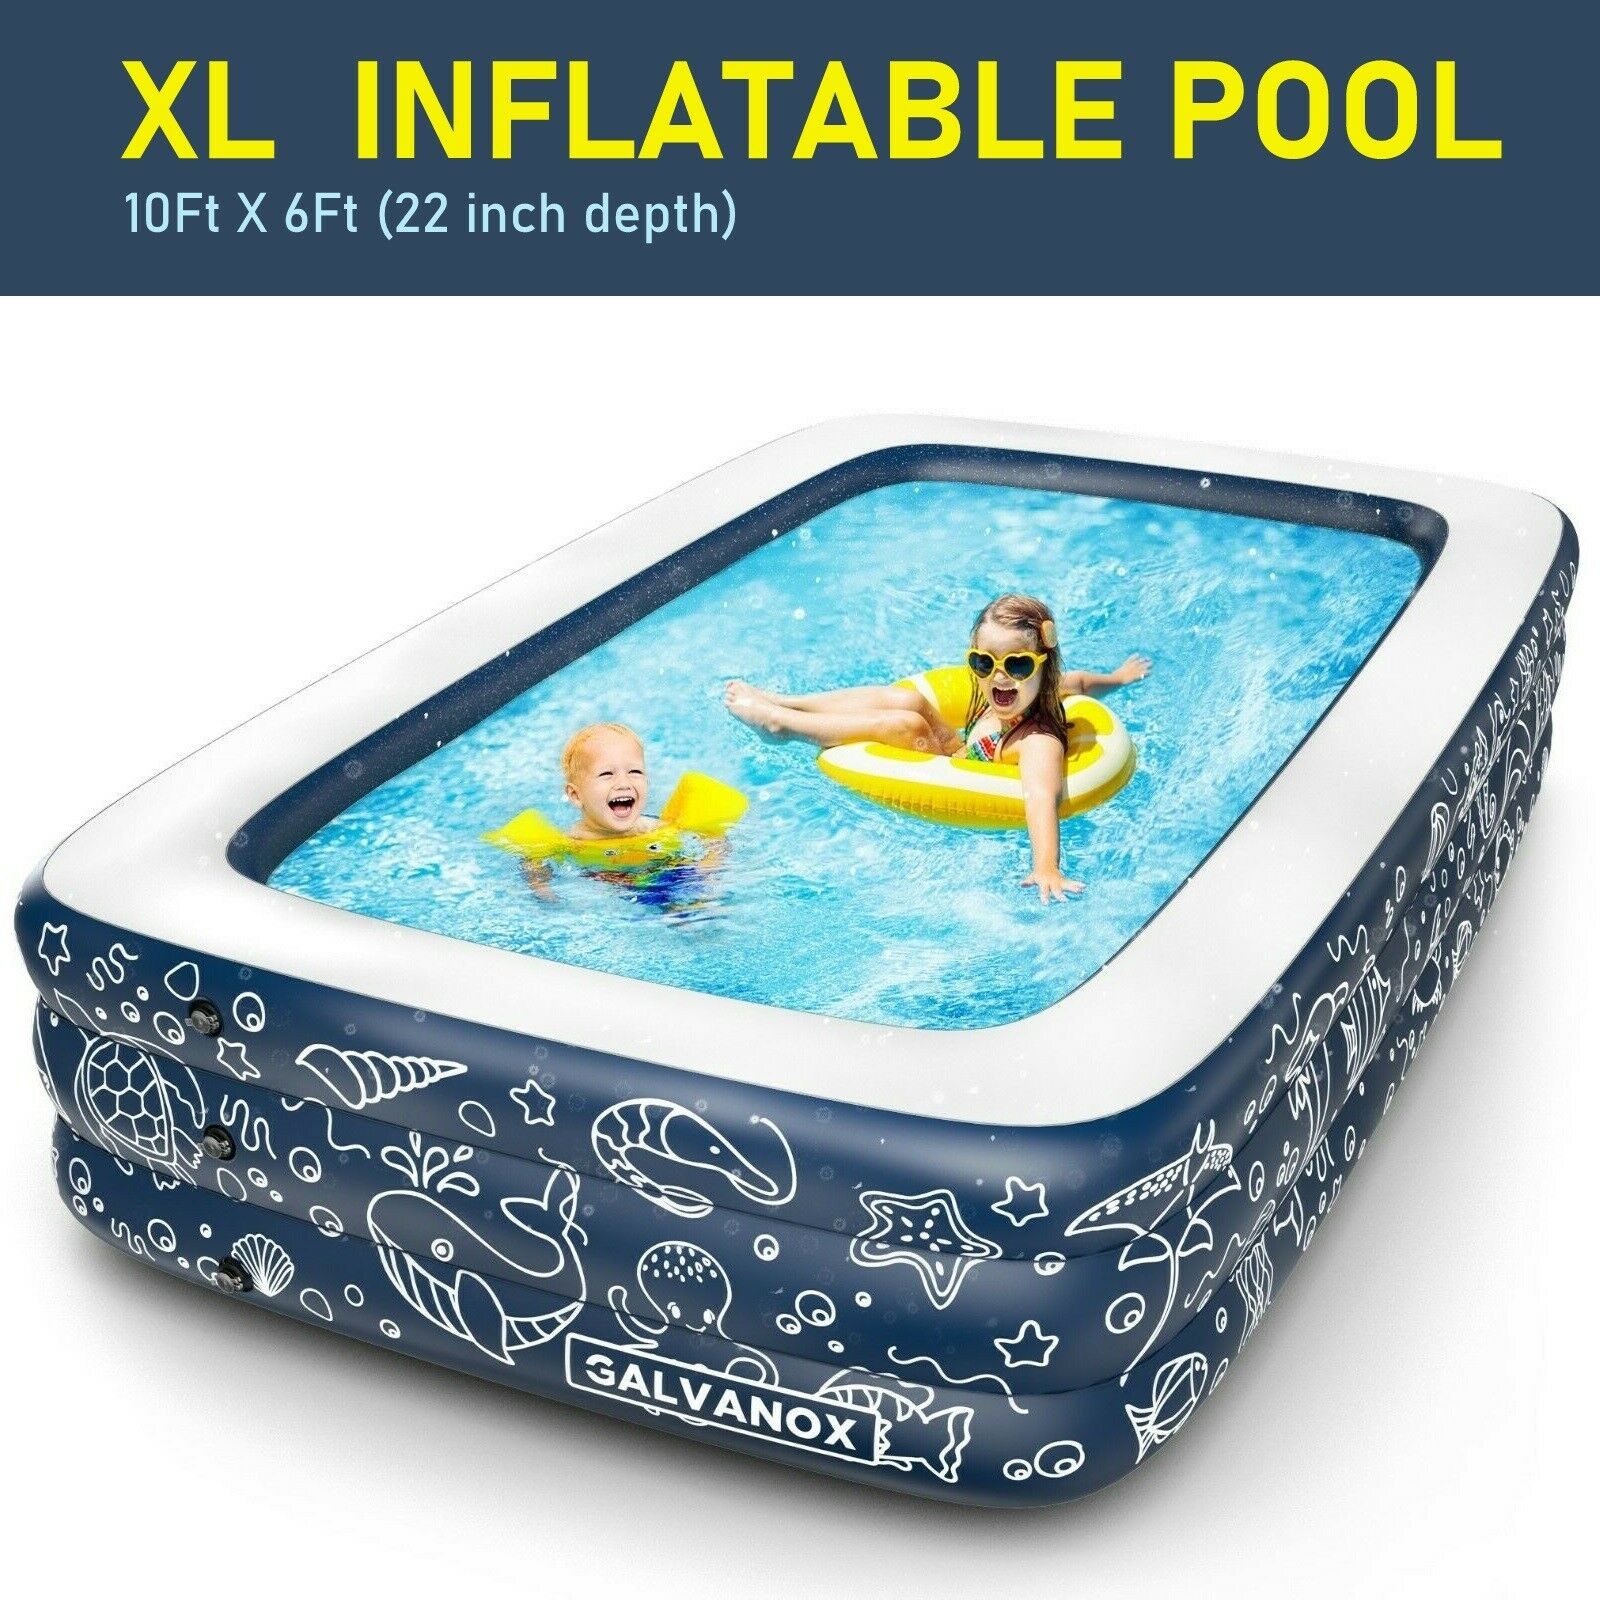 EXTRA LARGE Inflatable Pool Above Ground Swimming Pool for Kiddie, Kids 22